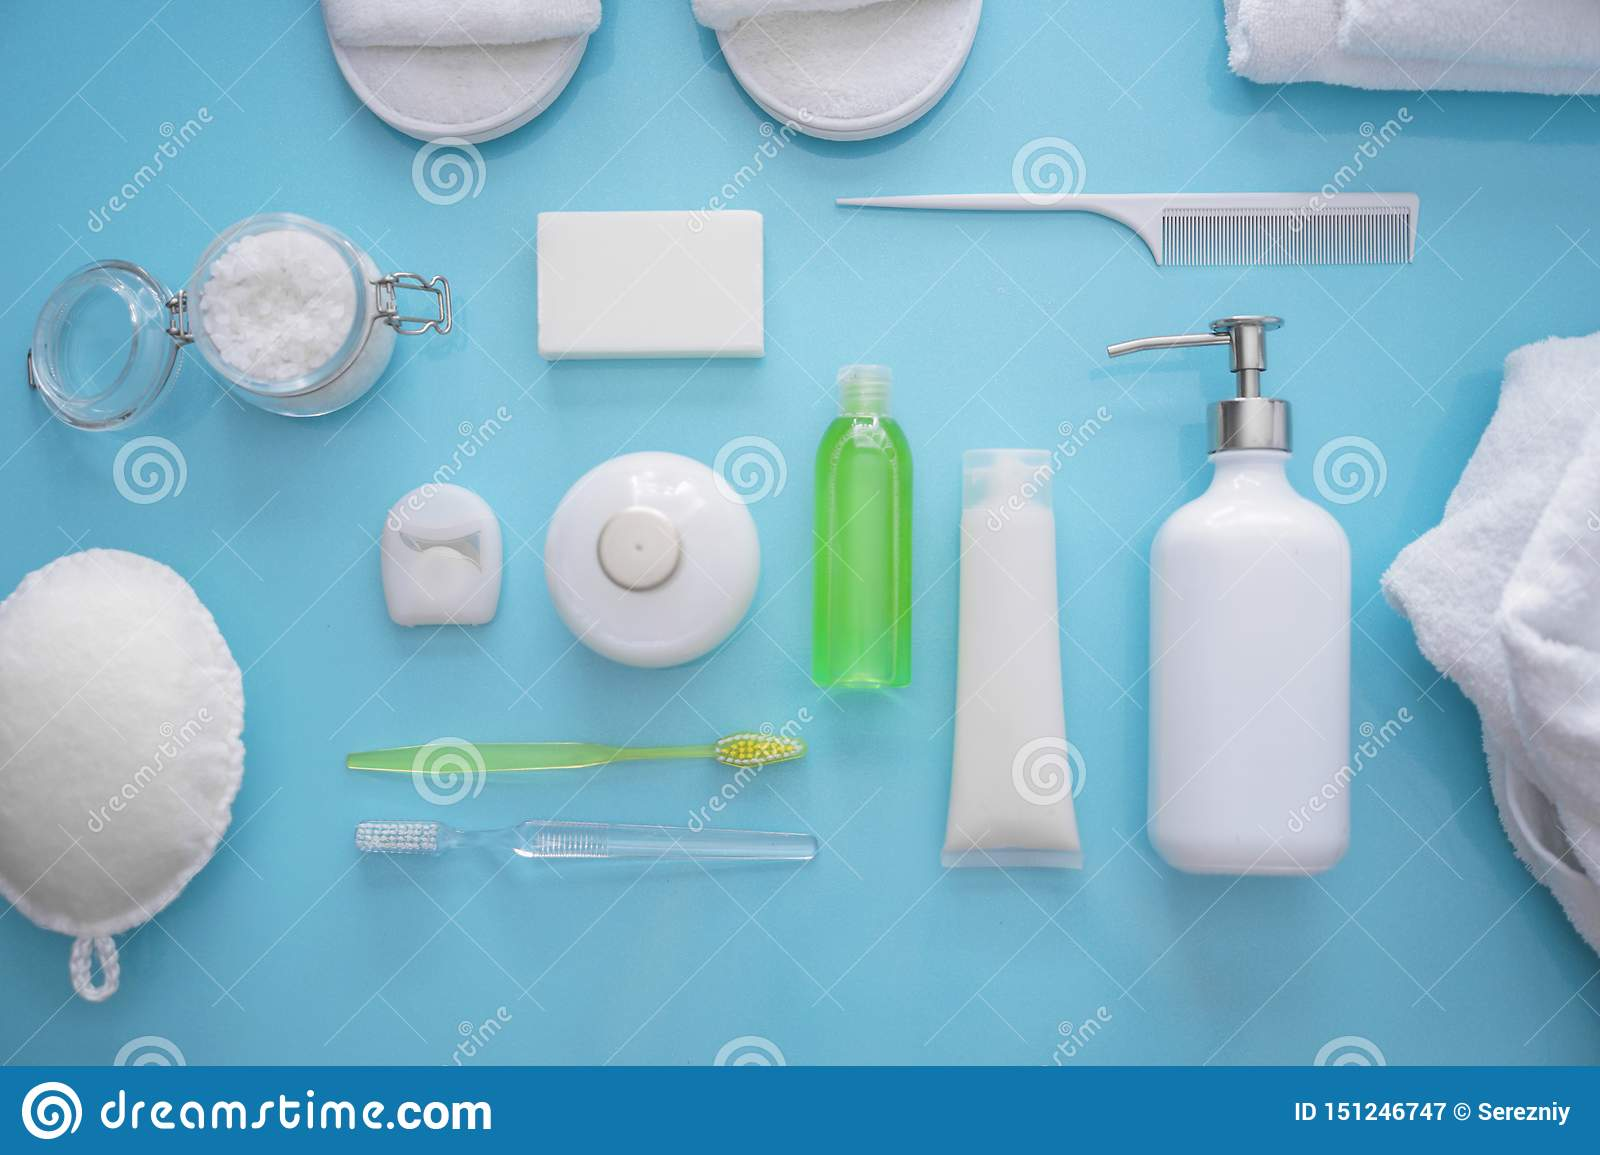 Composition with bathroom amenities on color background